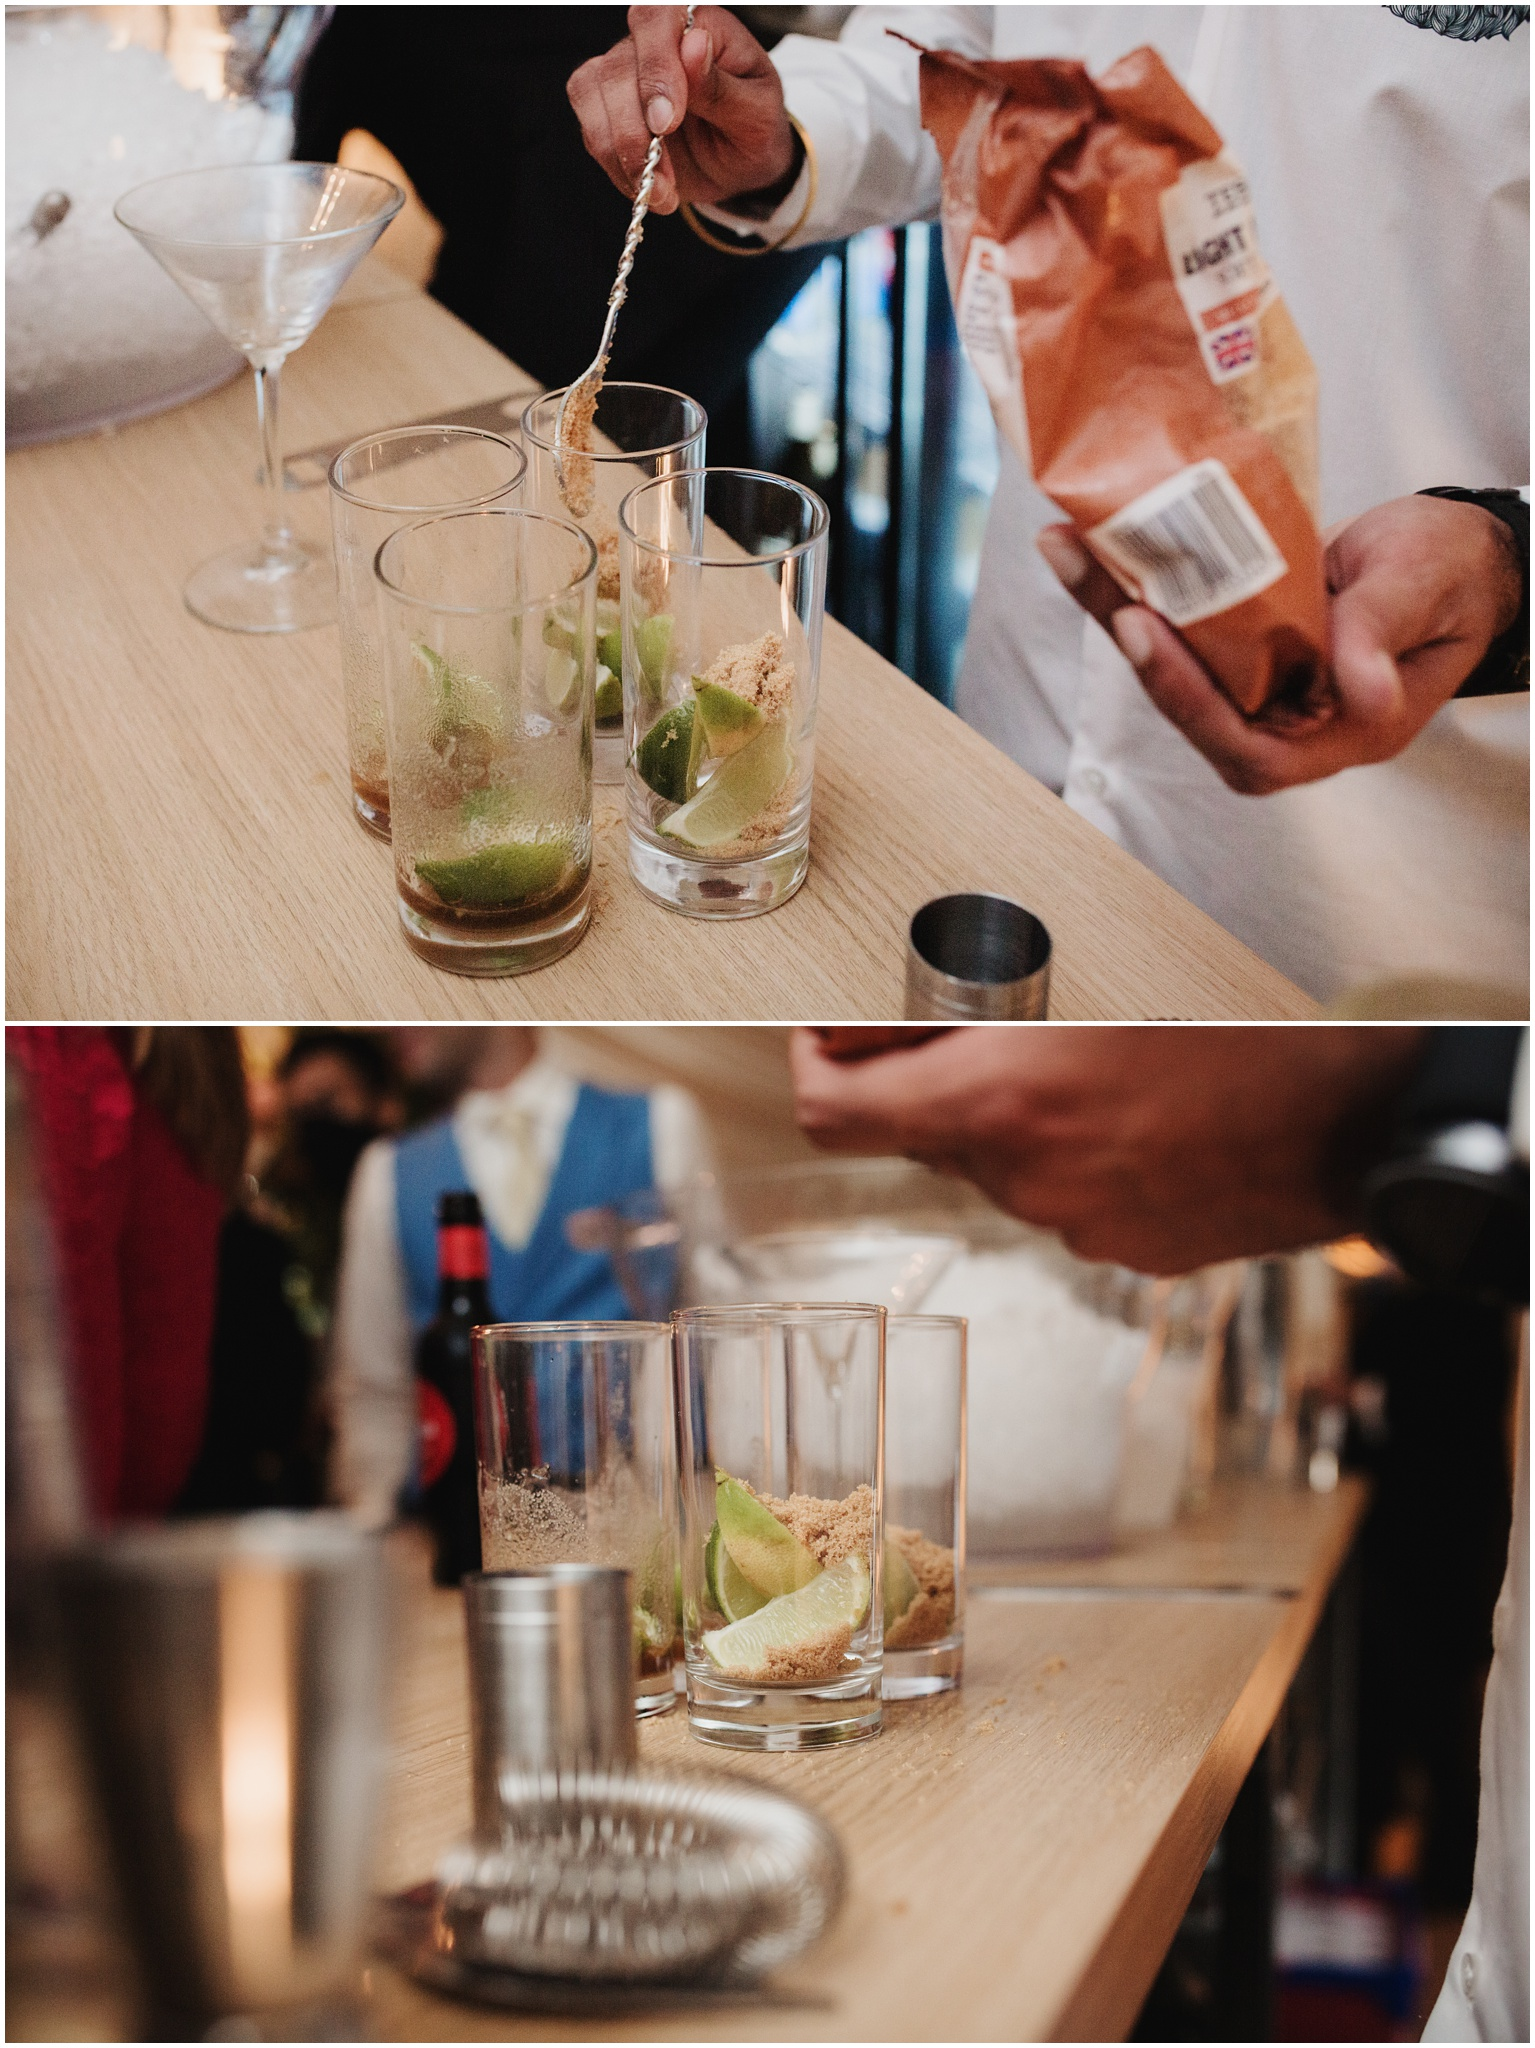 Cocktail drinks being served to guests